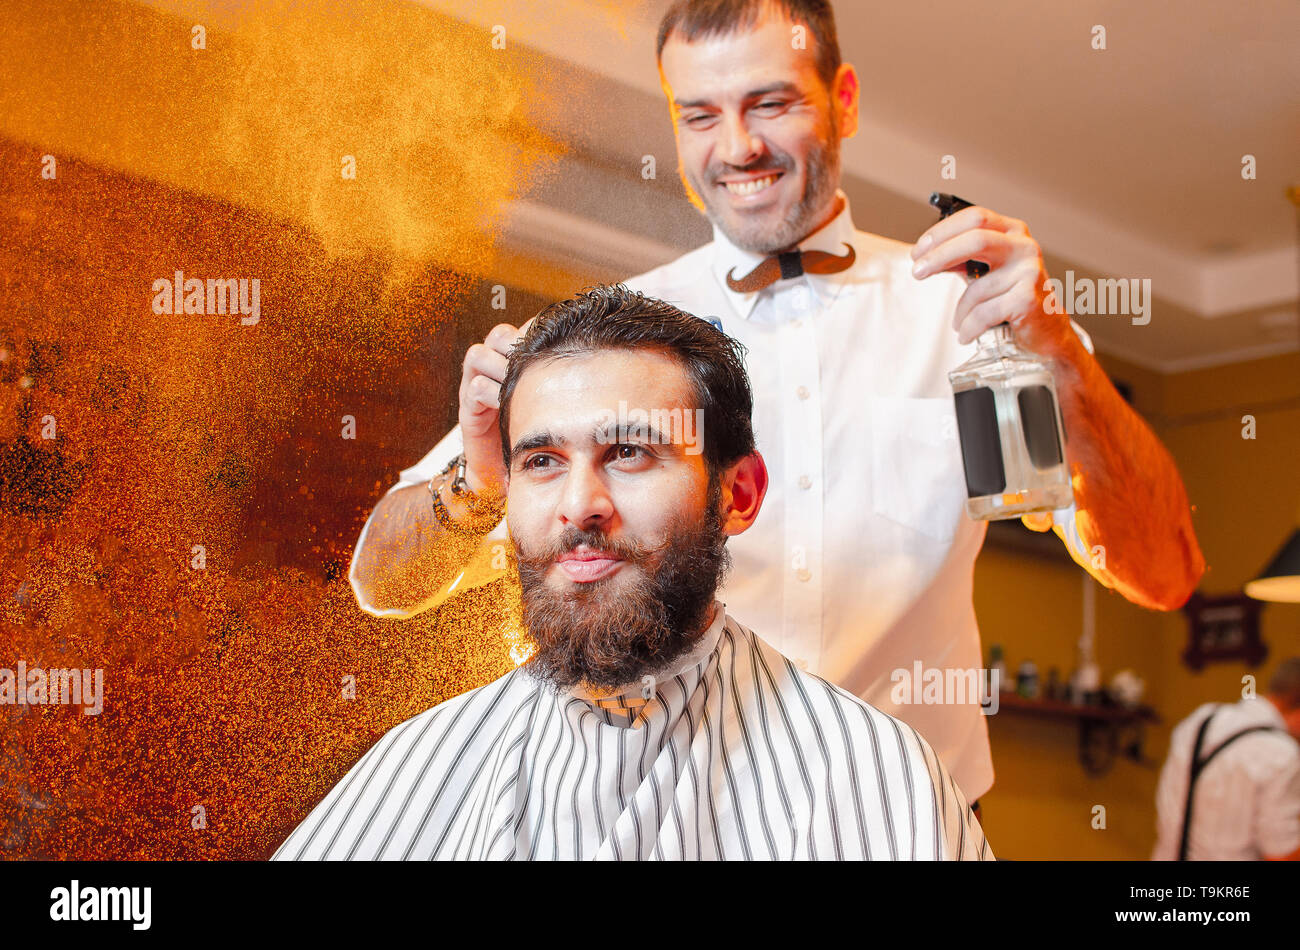 Barber combs his hair to a young guy with a beard and mustache and sprinkles hair on the spray gun. Barber Shop. - Stock Image